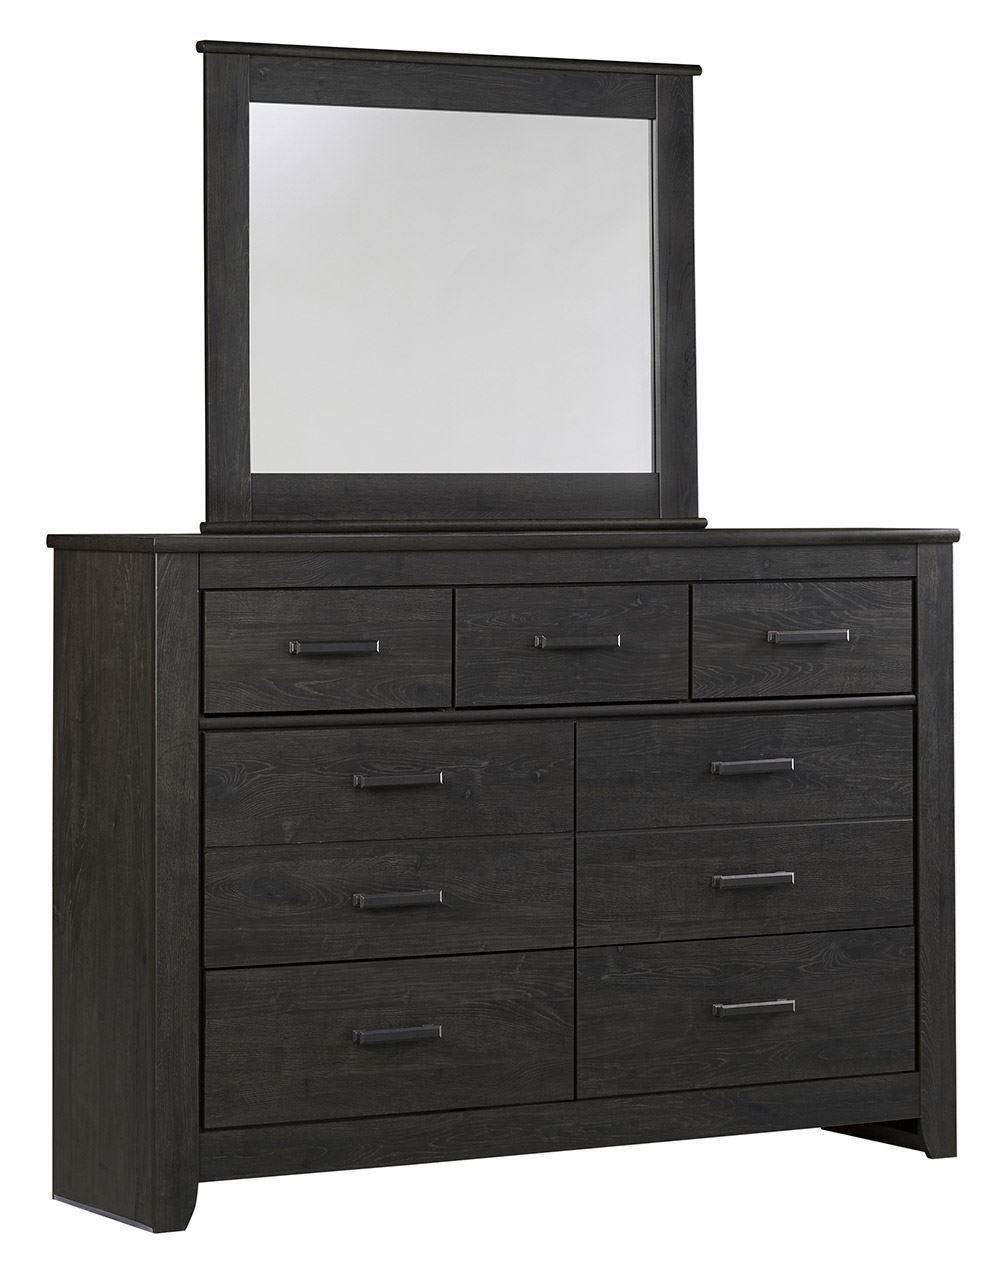 Picture of Brinxton Dresser and Mirror Set